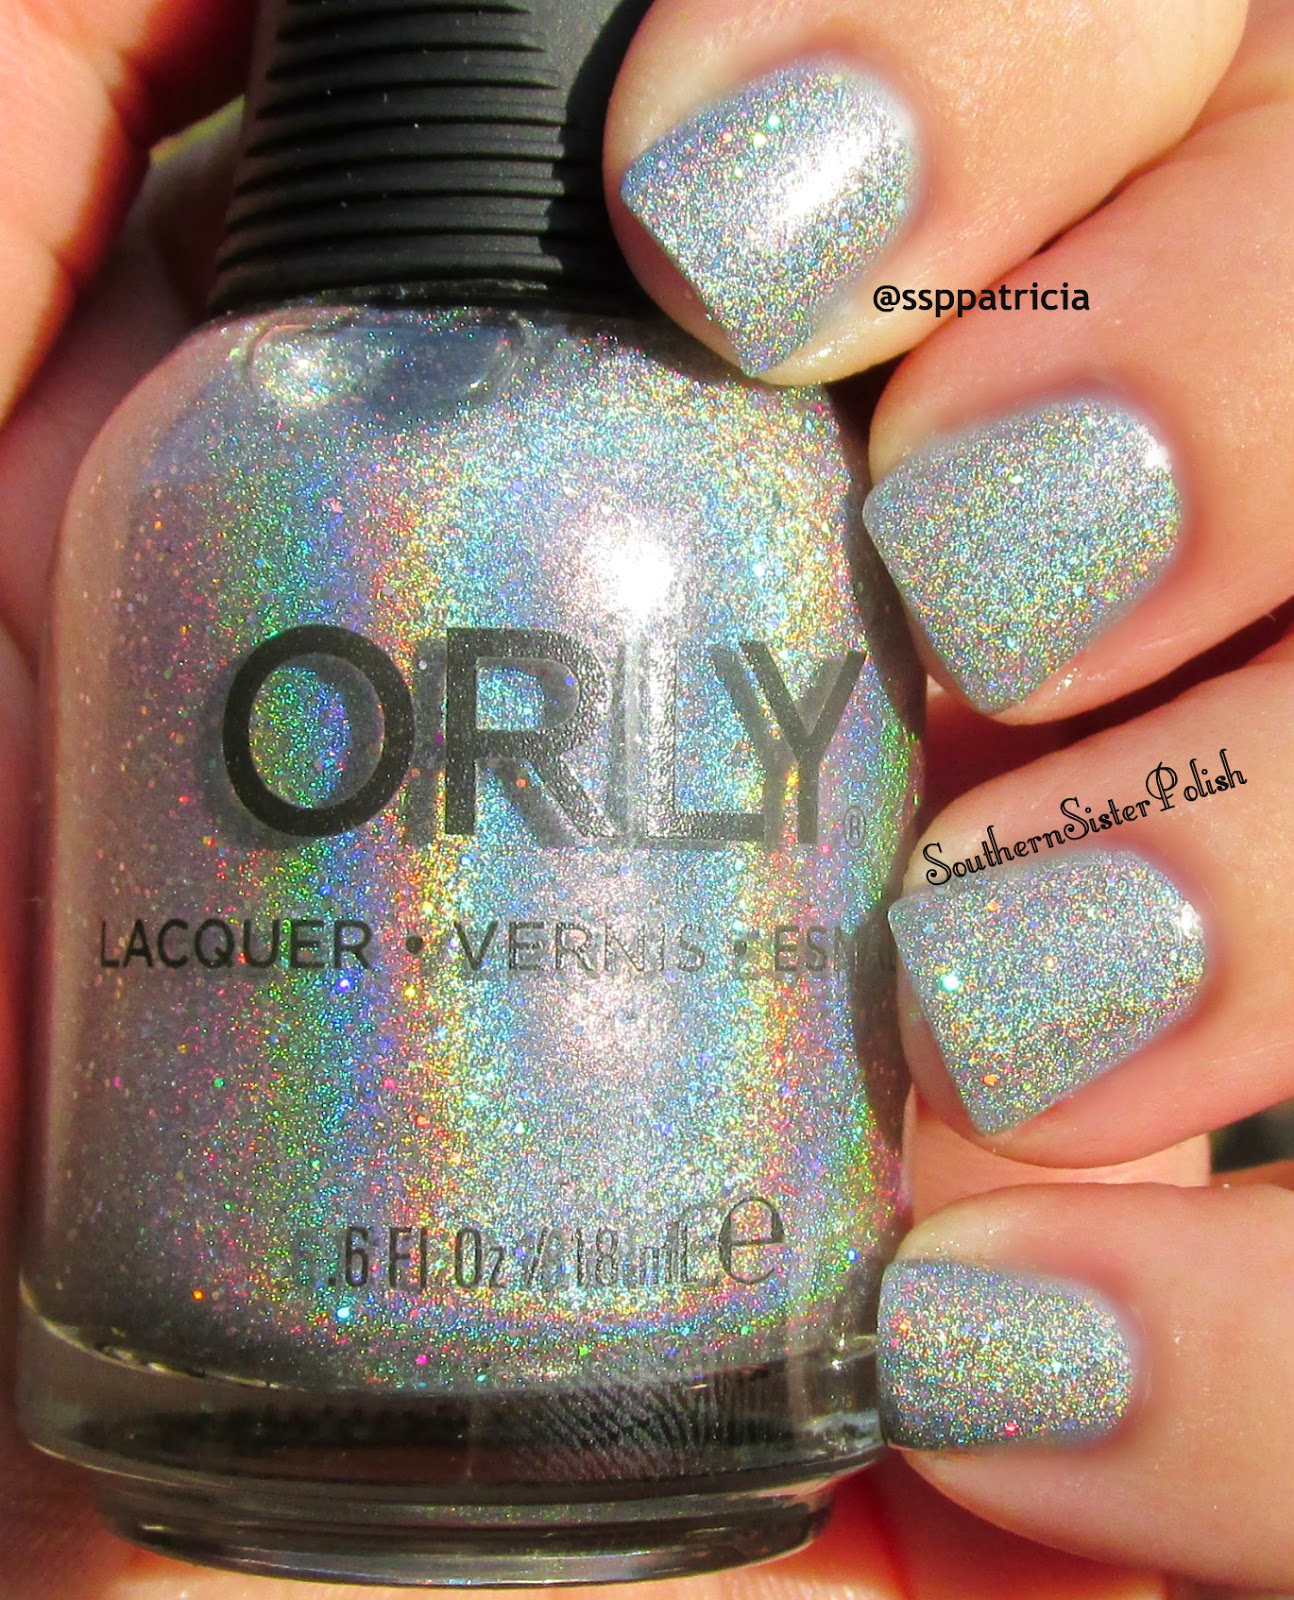 Southern Sister Polish: Weekend fun with Mirrorball